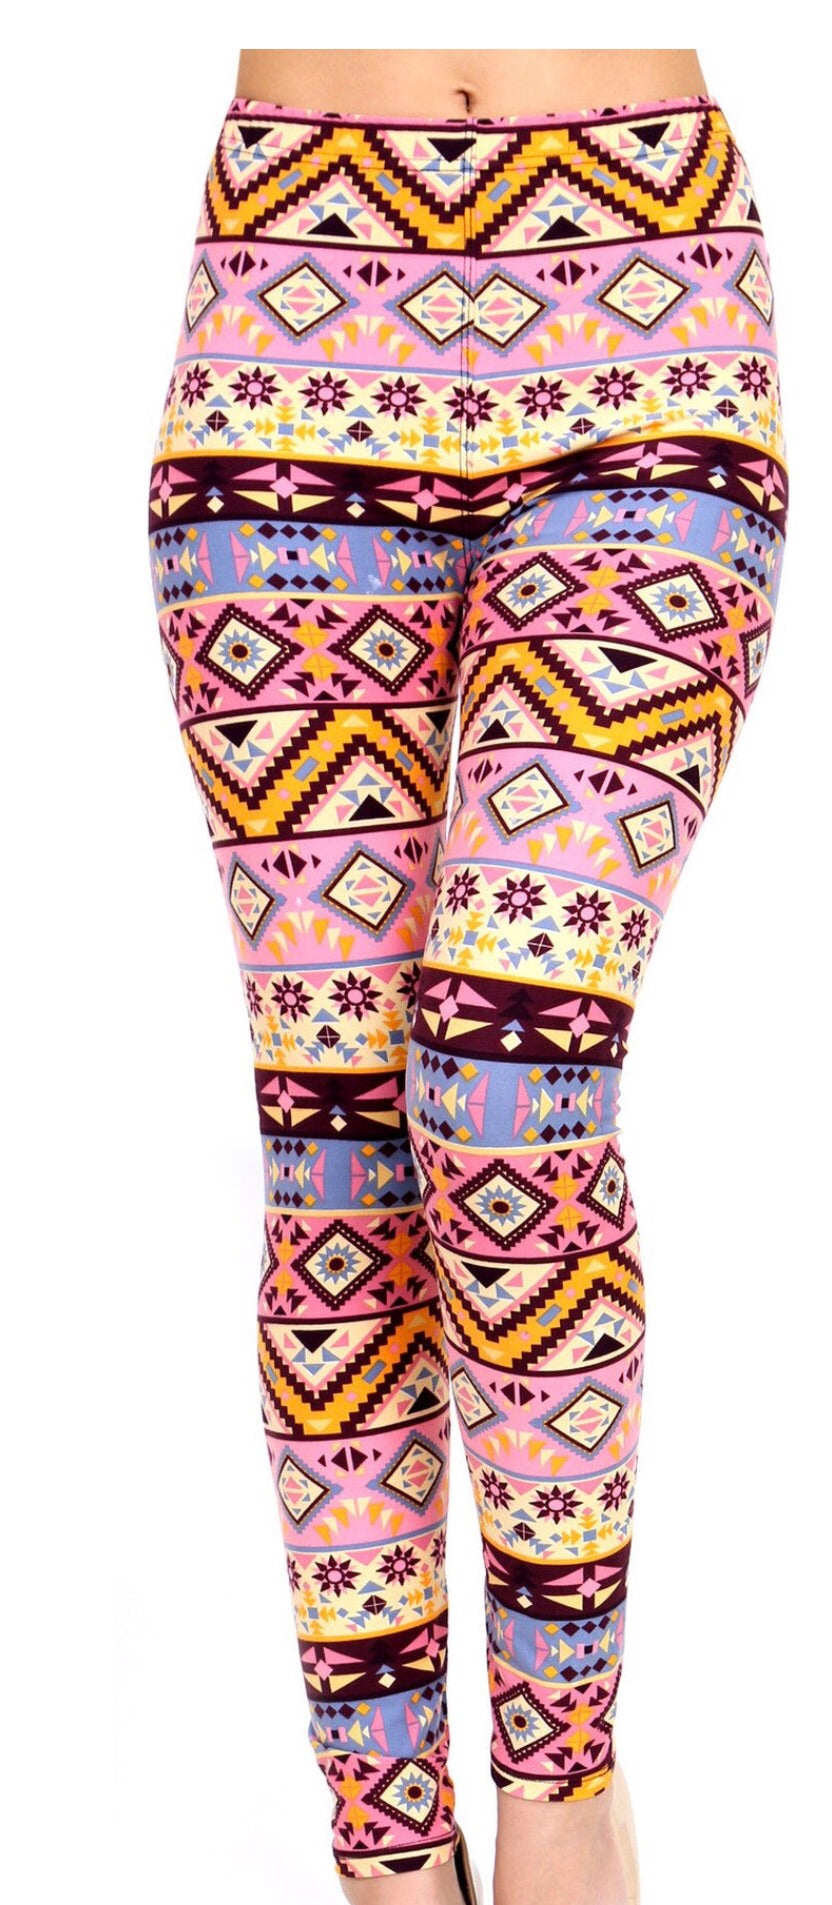 Spring Time Printed Women Leggings - The Audacious Boutique